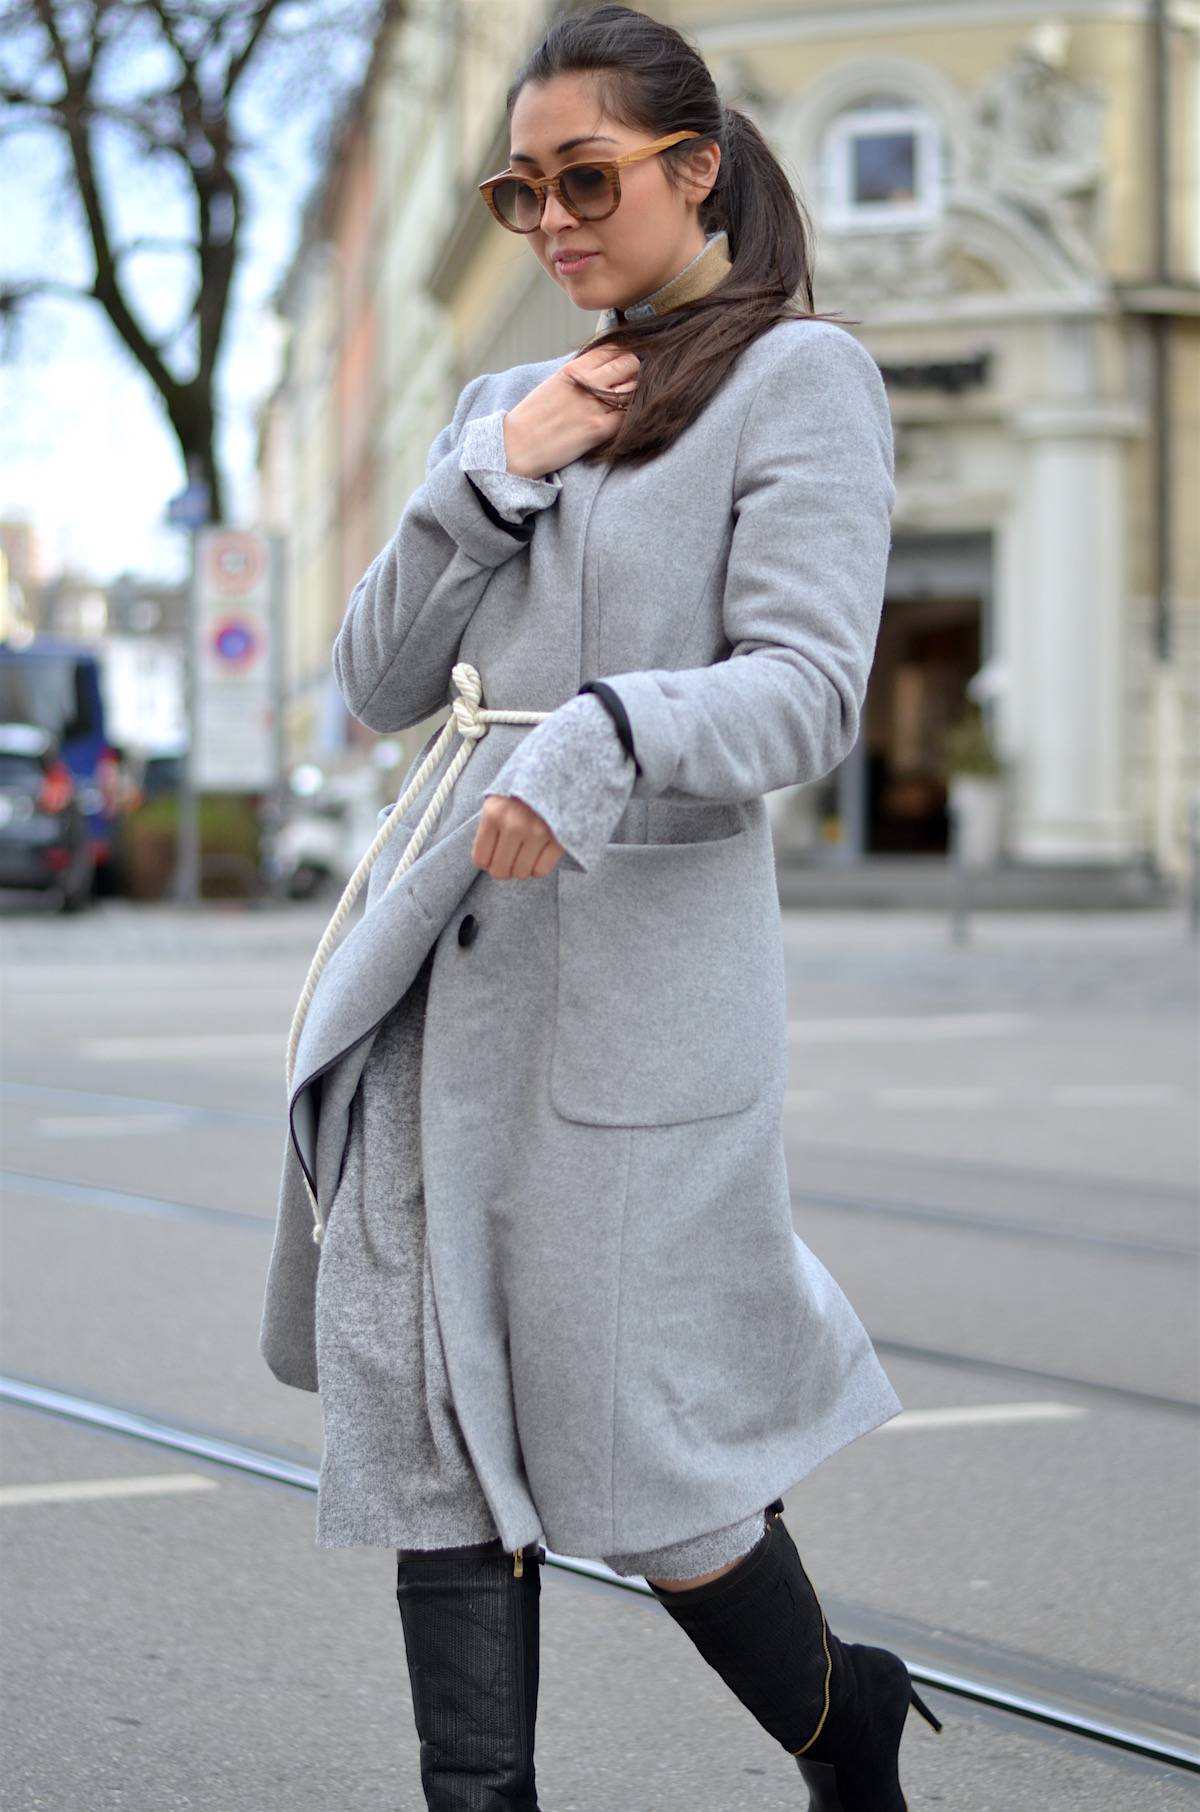 The Long Grey Wool Coat - Ootd - Streetstyle - Munich - Black Boots - Schwarze Stiefel - Fersengold - René Lezard - Mantel - Kerbholz Sonnenbrille - Ponytail - Glockenbach München